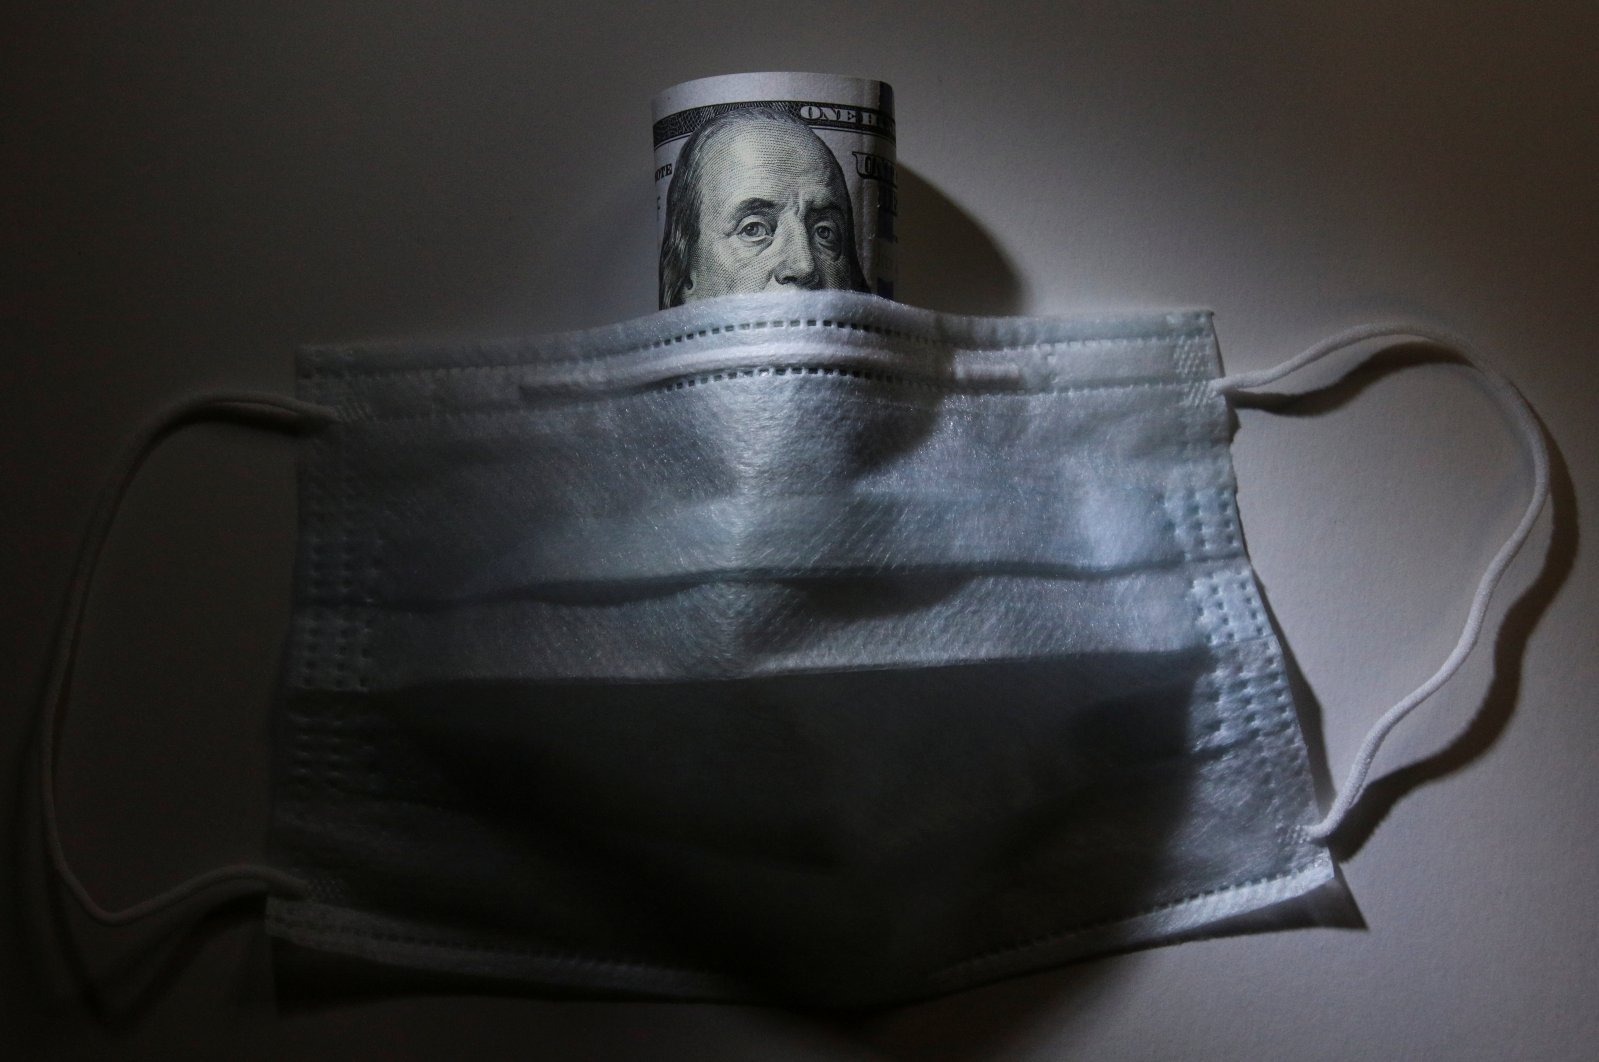 A U.S. dollar banknote is pictured behind a protective mask, a widely used preventive measure against the coronavirus, in this illustration taken Tuesday, March 17, 2020. (Reuters Photo)